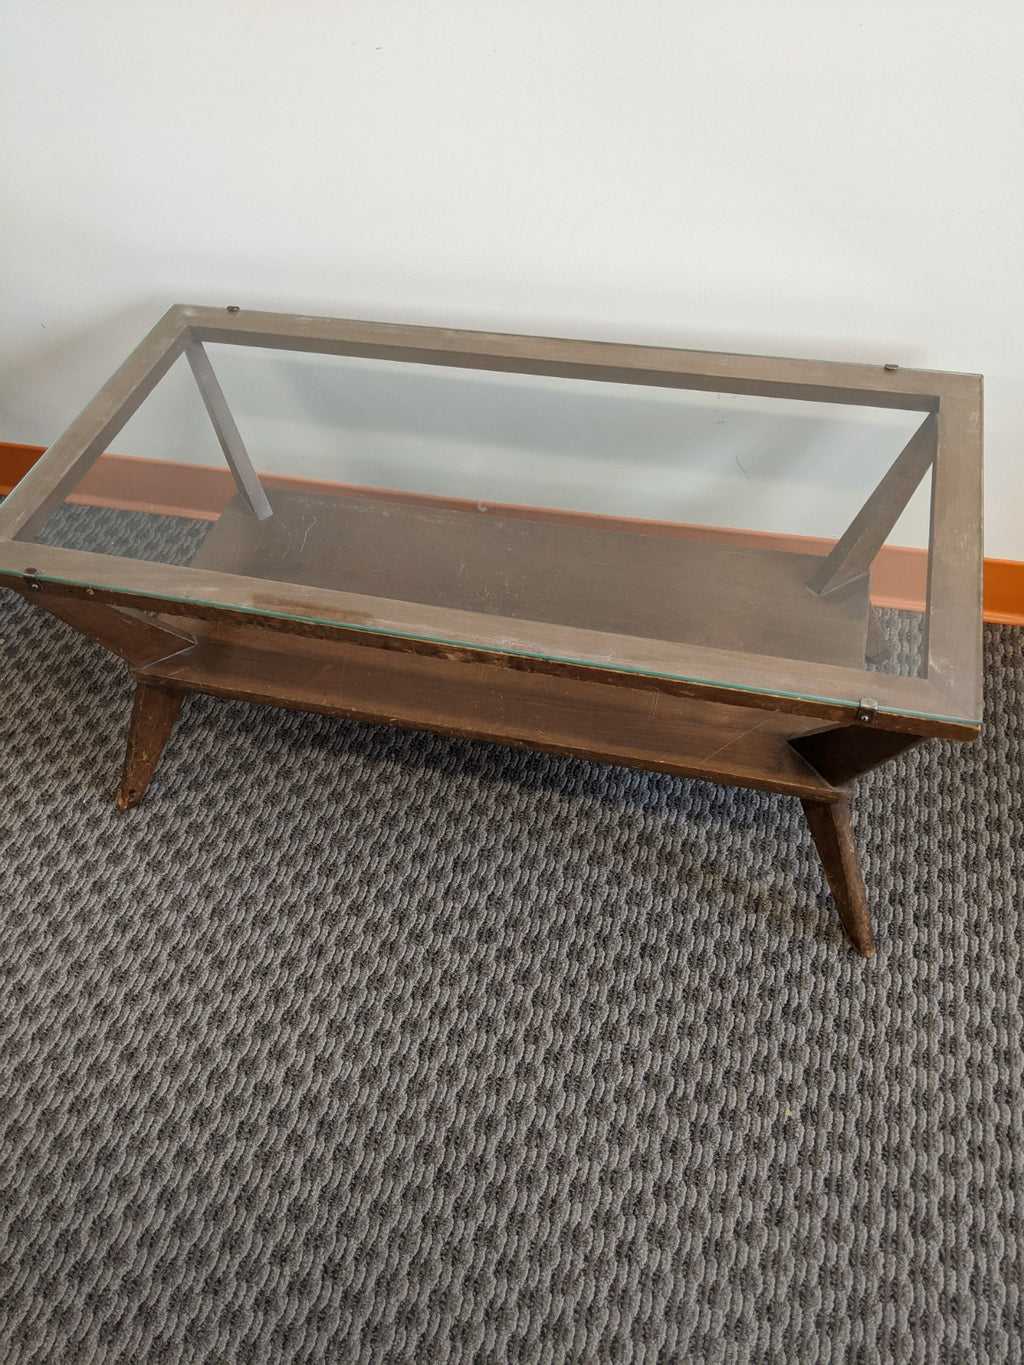 Vintage mid-century glass-top coffee table